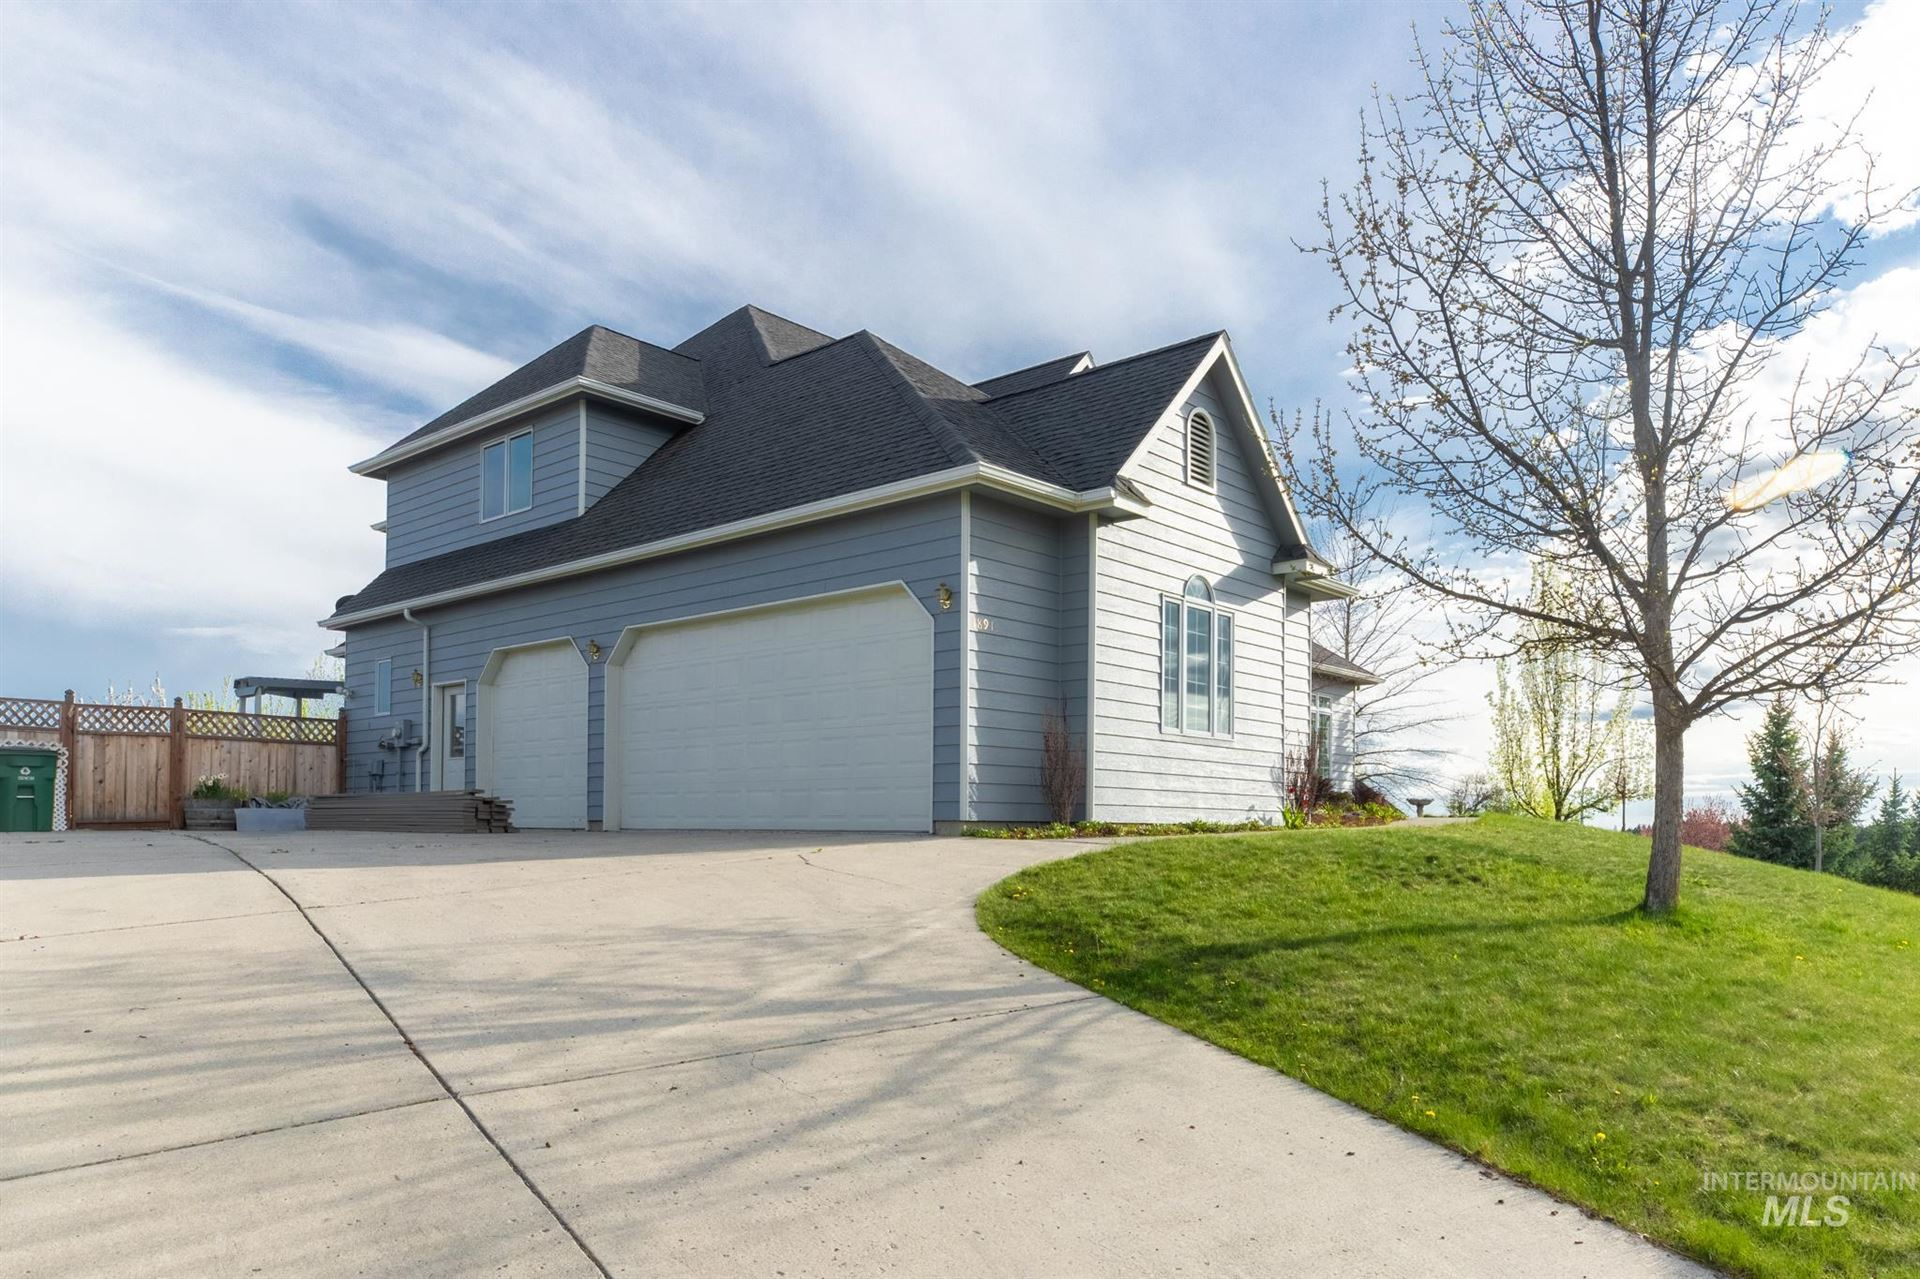 Photo of 1891 Rolling Hills, Moscow, ID 83843 (MLS # 98758672)